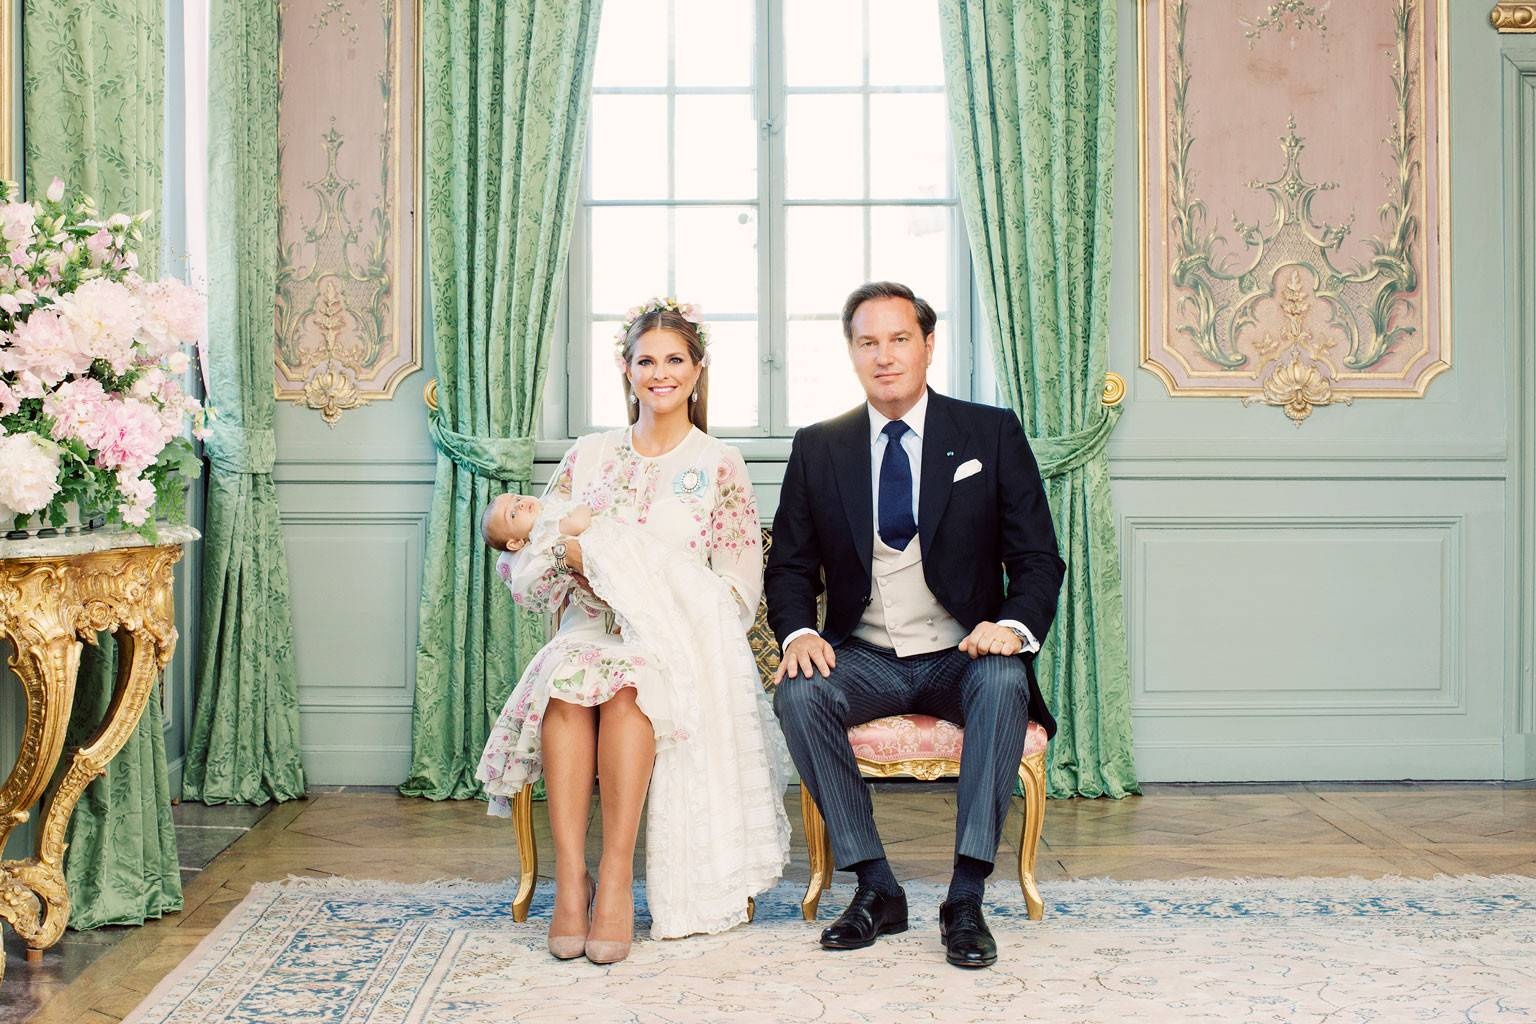 Princess Adrienne of Sweden's Christening Portraits Are Utterly Magical